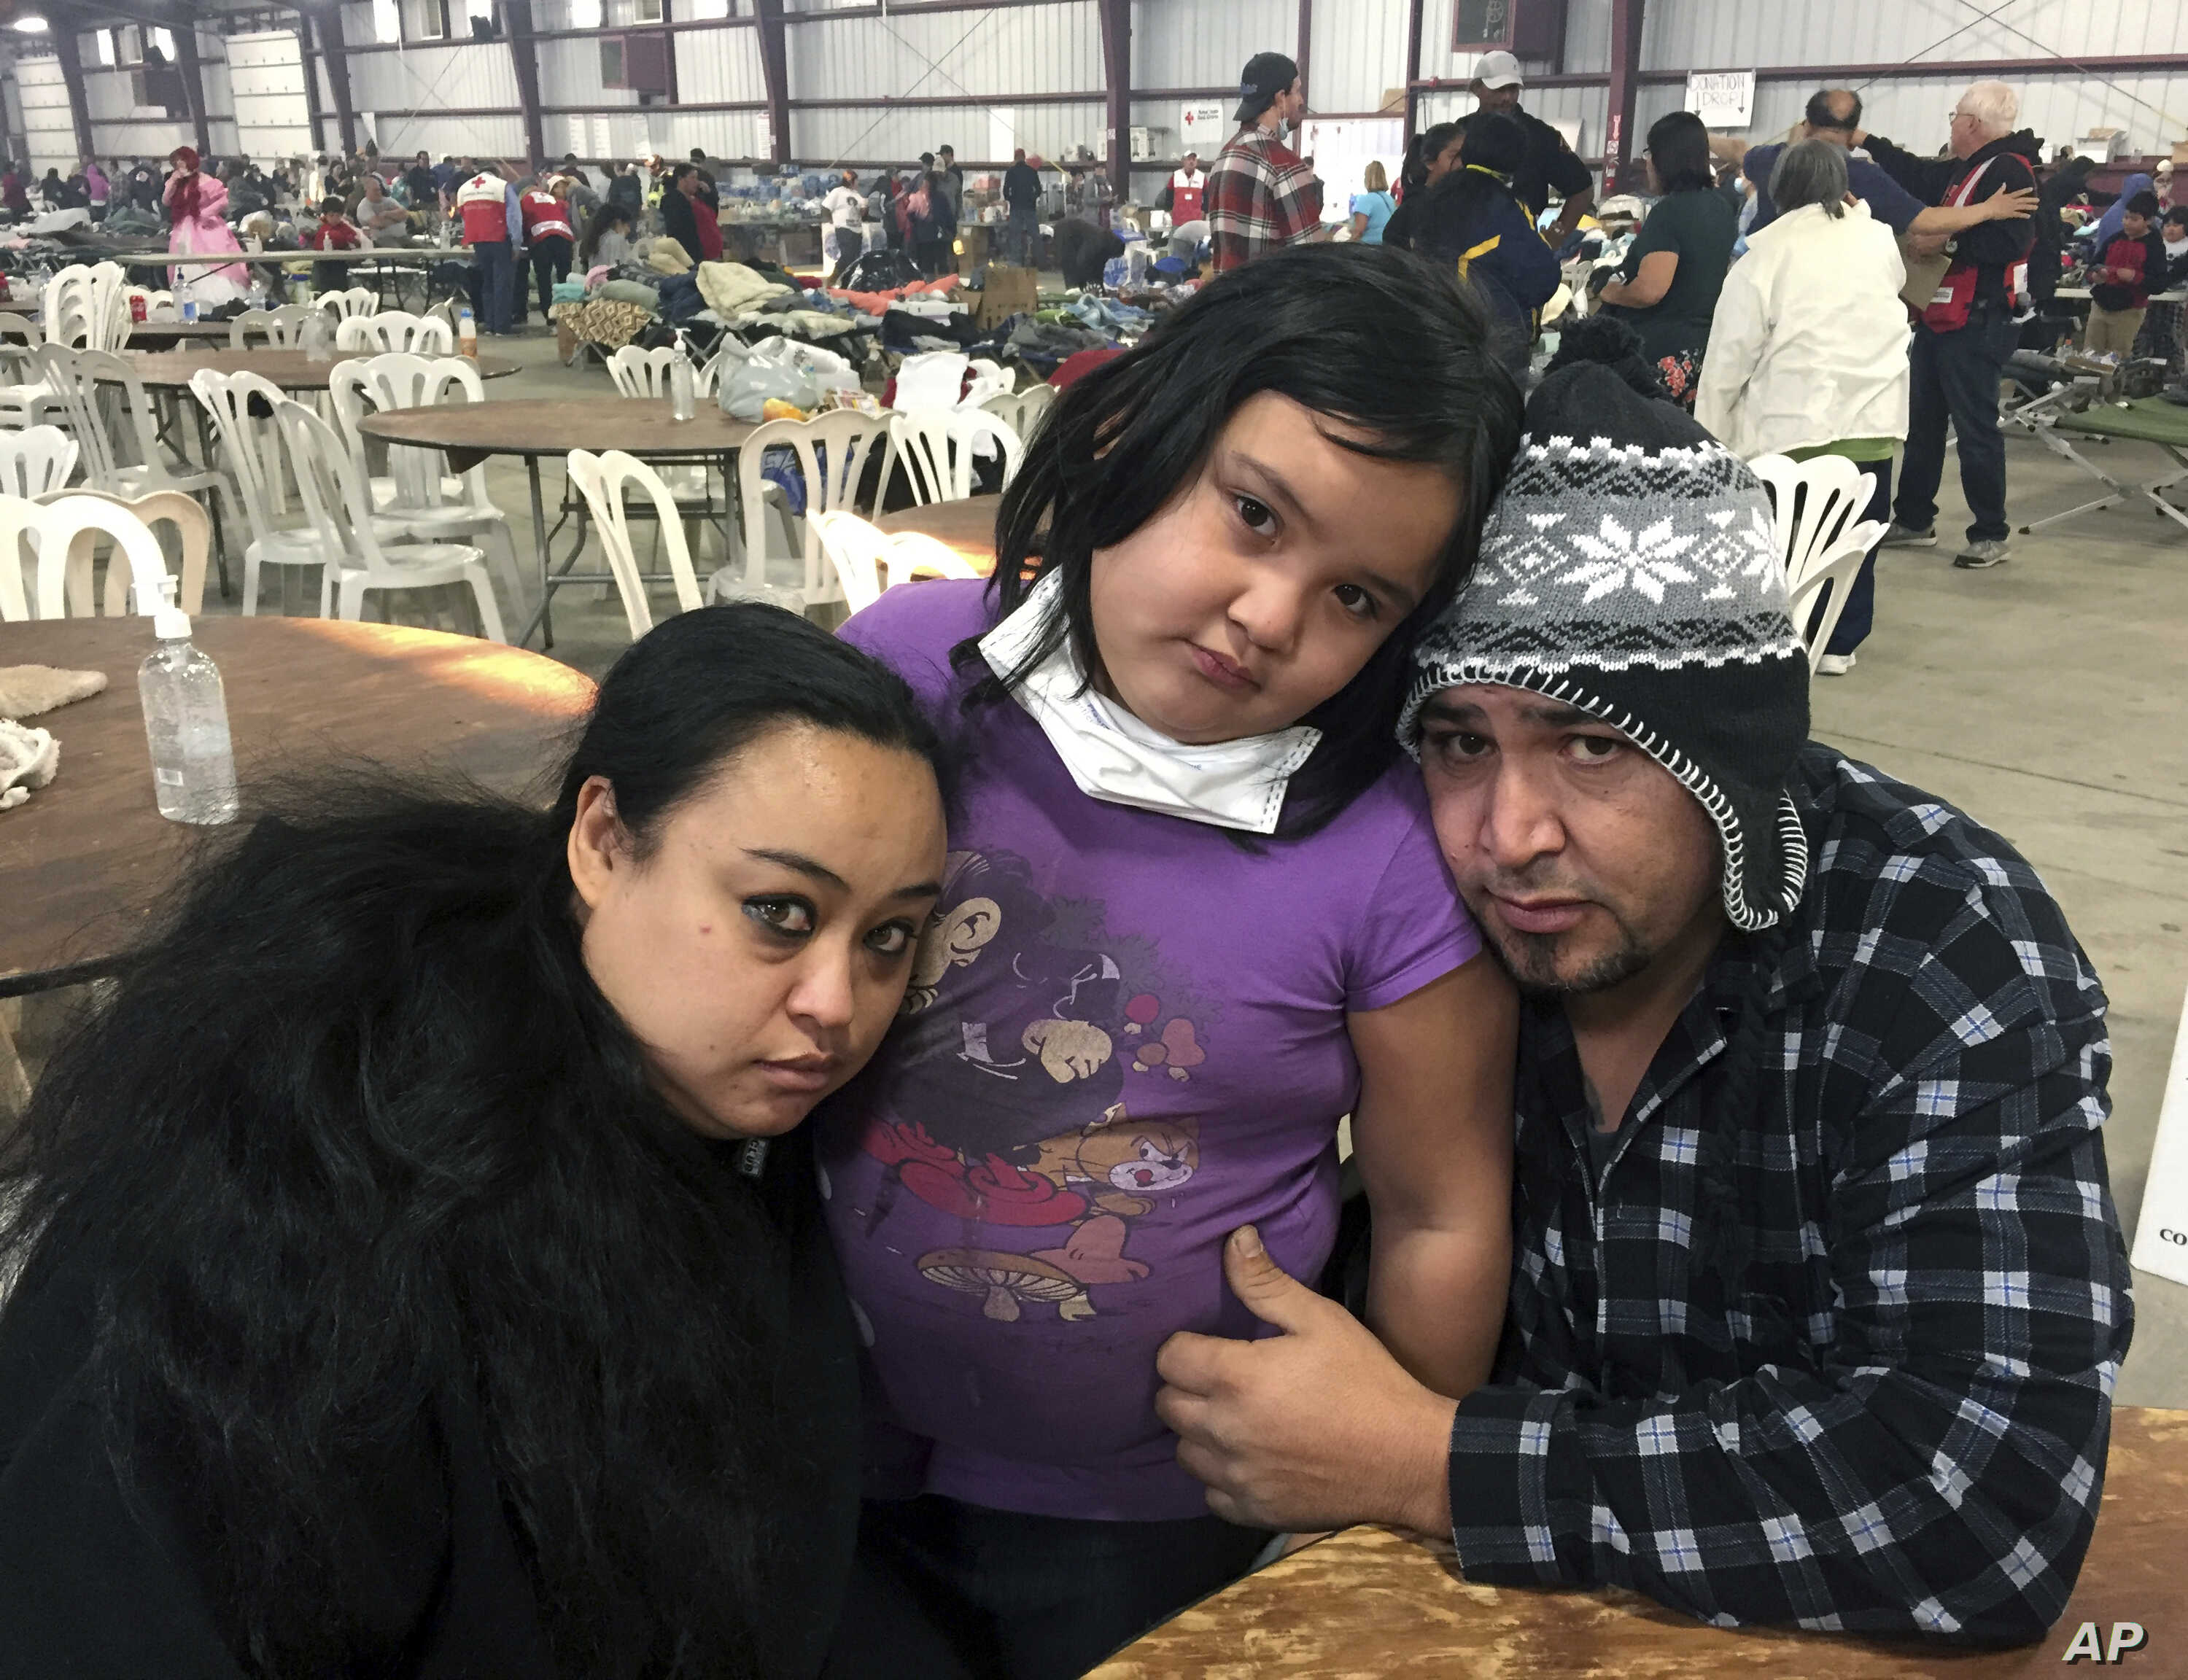 Wildfire survivors, Marolyn Romero-Sim, left, with Hugo Romero-Rodriguez, middle, and their 9-year-old daughter, Milagros, sit inside the evacuation center at the Ventura County Fairgrounds in Ventura, Calif. Their RV burned up with all their possess...